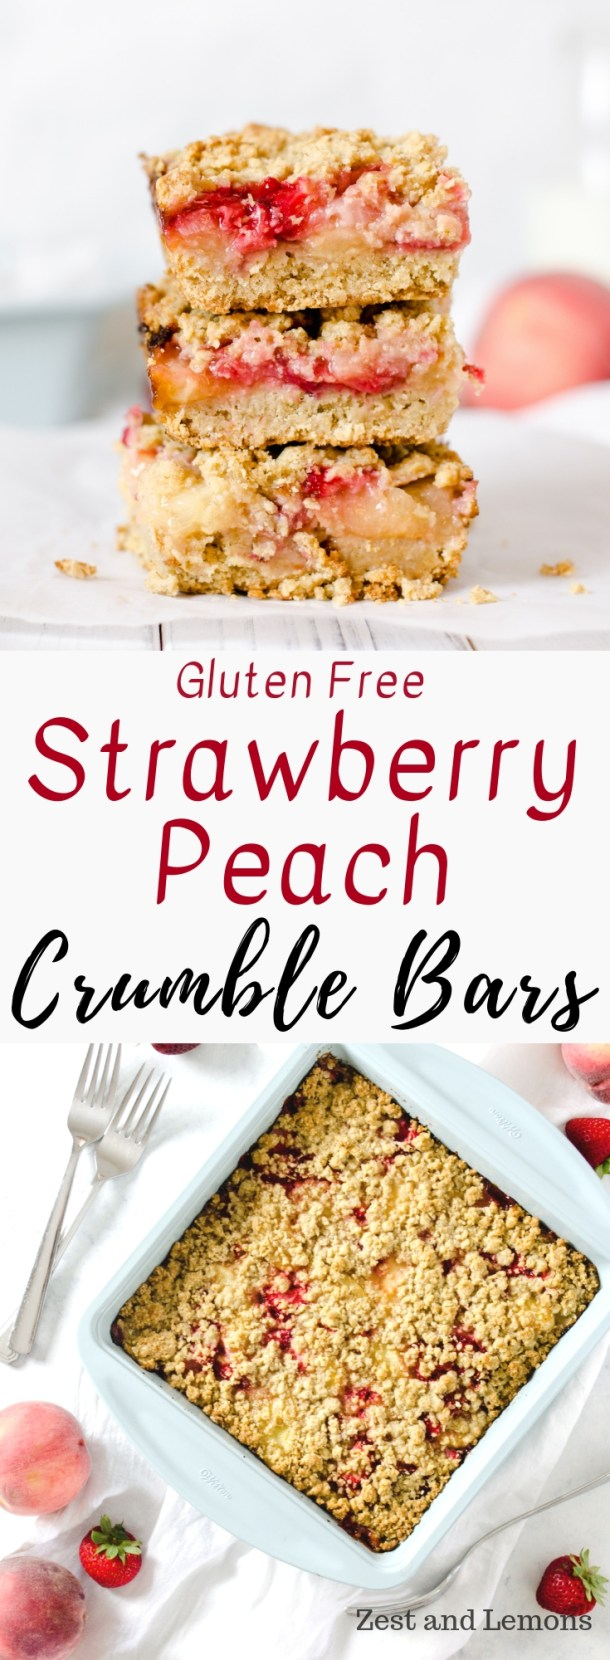 Strawberry Peach Gluten Free Crumble Bars. Made with a gluten free oatmeal cookie crust, and loaded with fresh summer fruit - Zest and Lemons #glutenfree #crumblebars #crumbbars #peachcrumbbars #glutenfreedessert